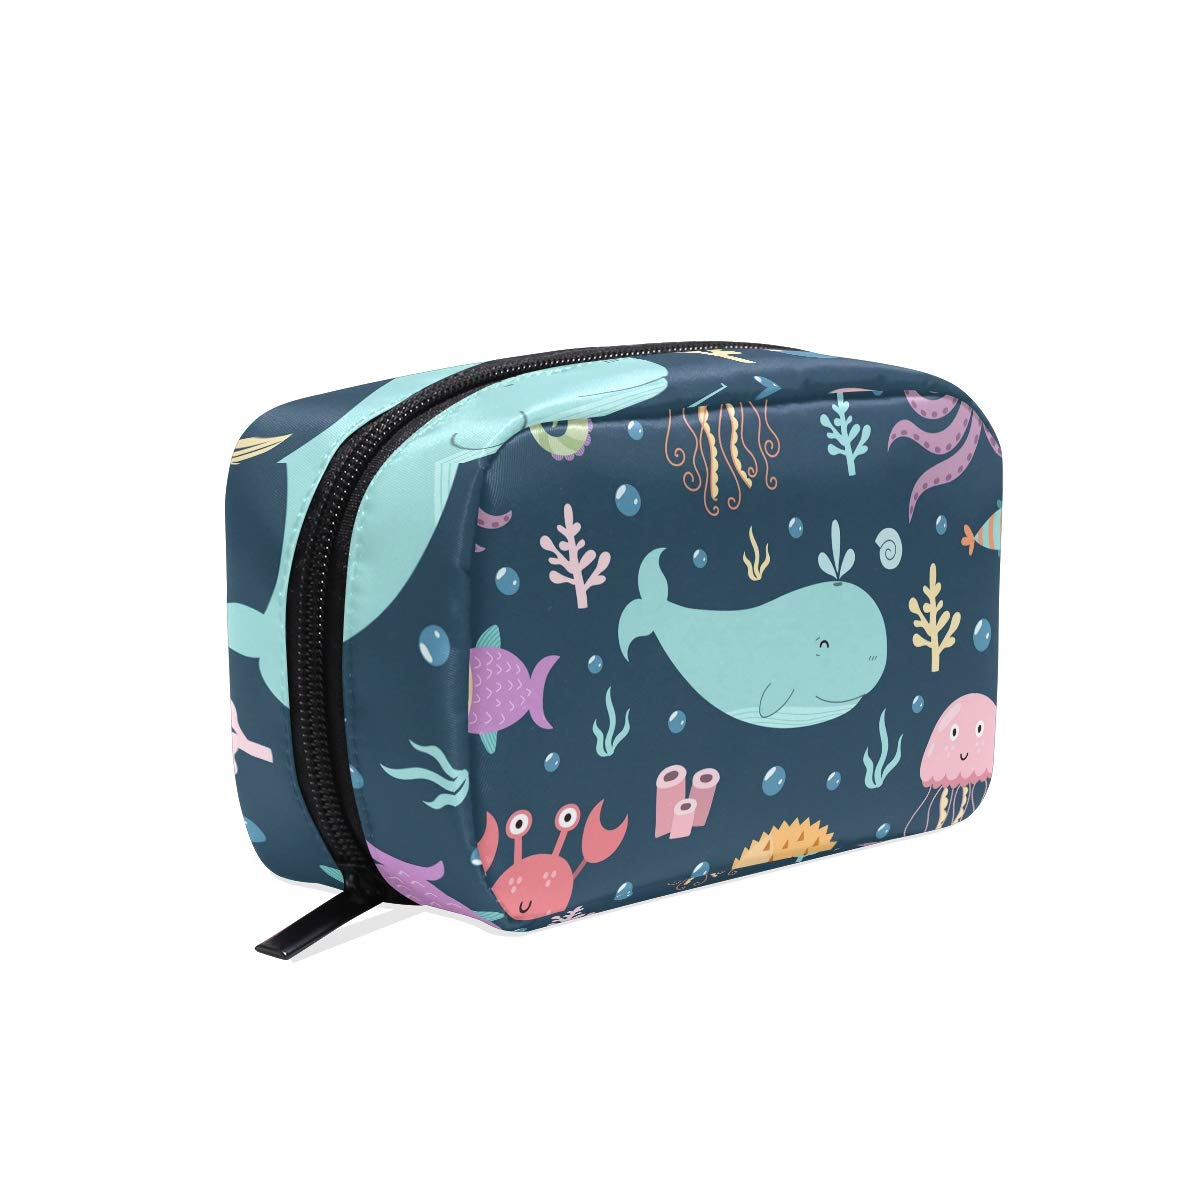 Unicey Sea Creatures Underwater Makeup Bags Portable Tote Cosmetics Bag Travel Cosmetic Organizer Toiletry Bag Make-up Cases for Women